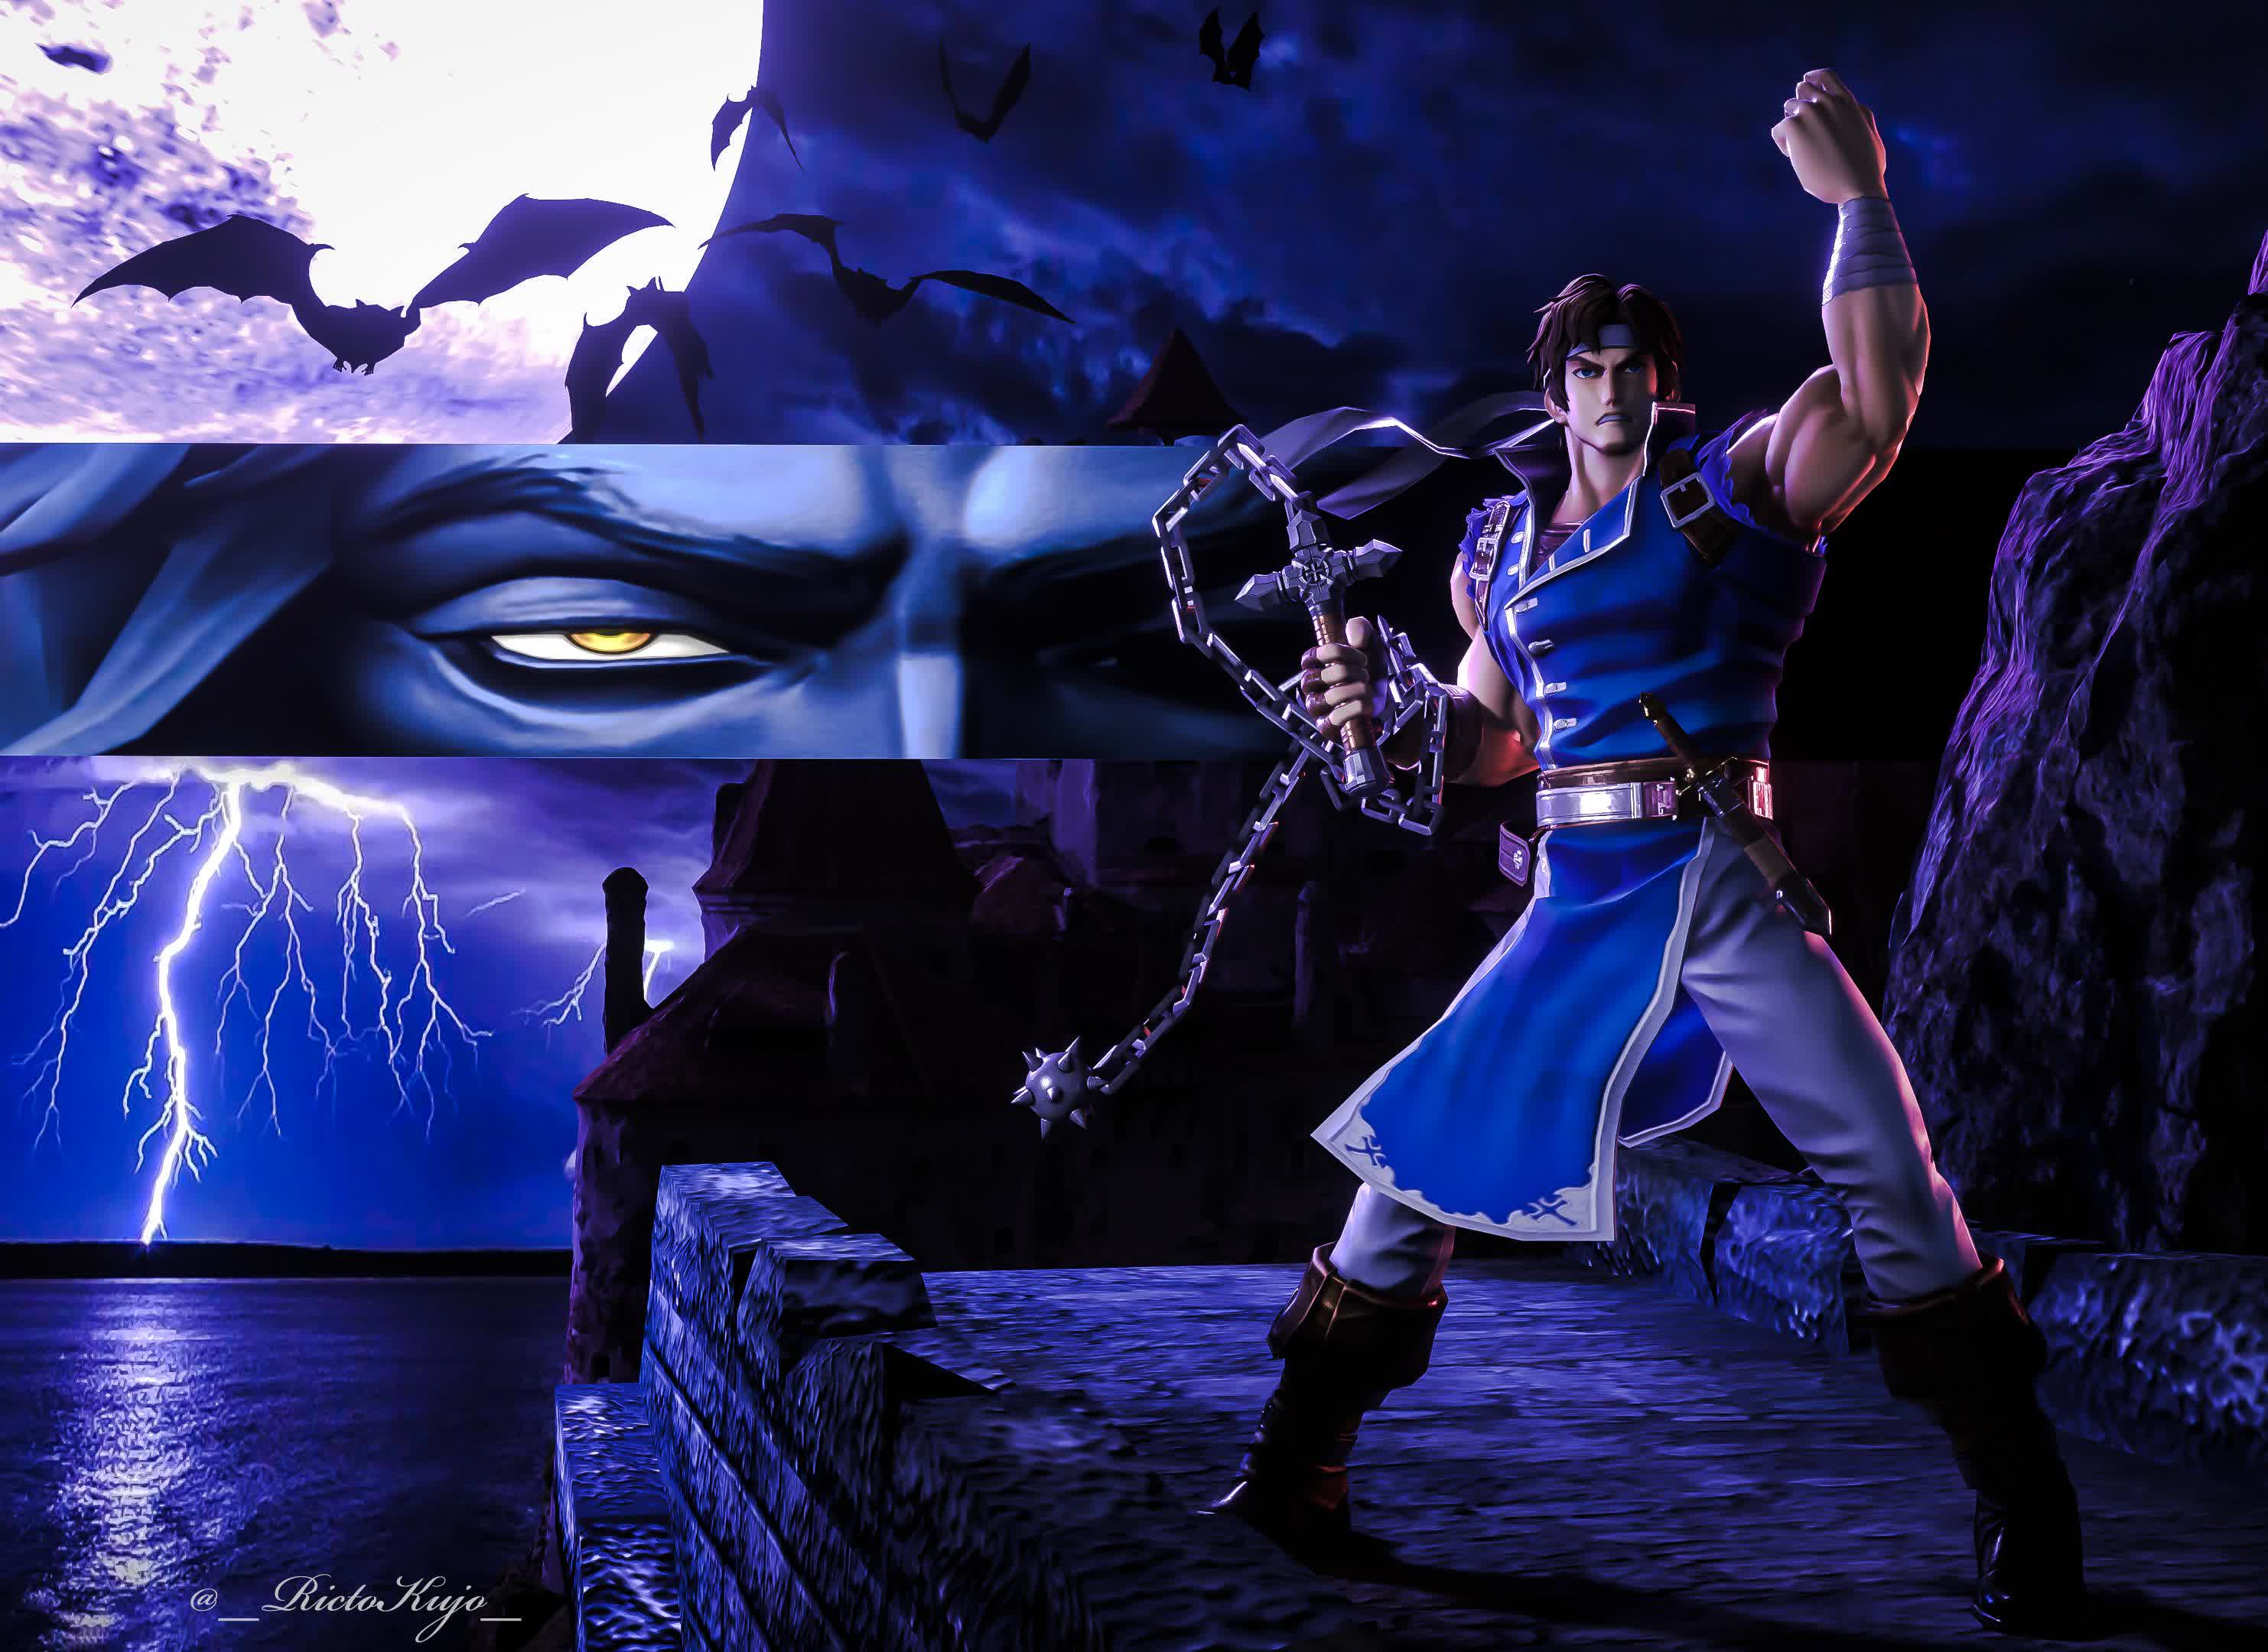 Castlevania: Rondo of Blood is coming to the TurboDuo in English for the first time